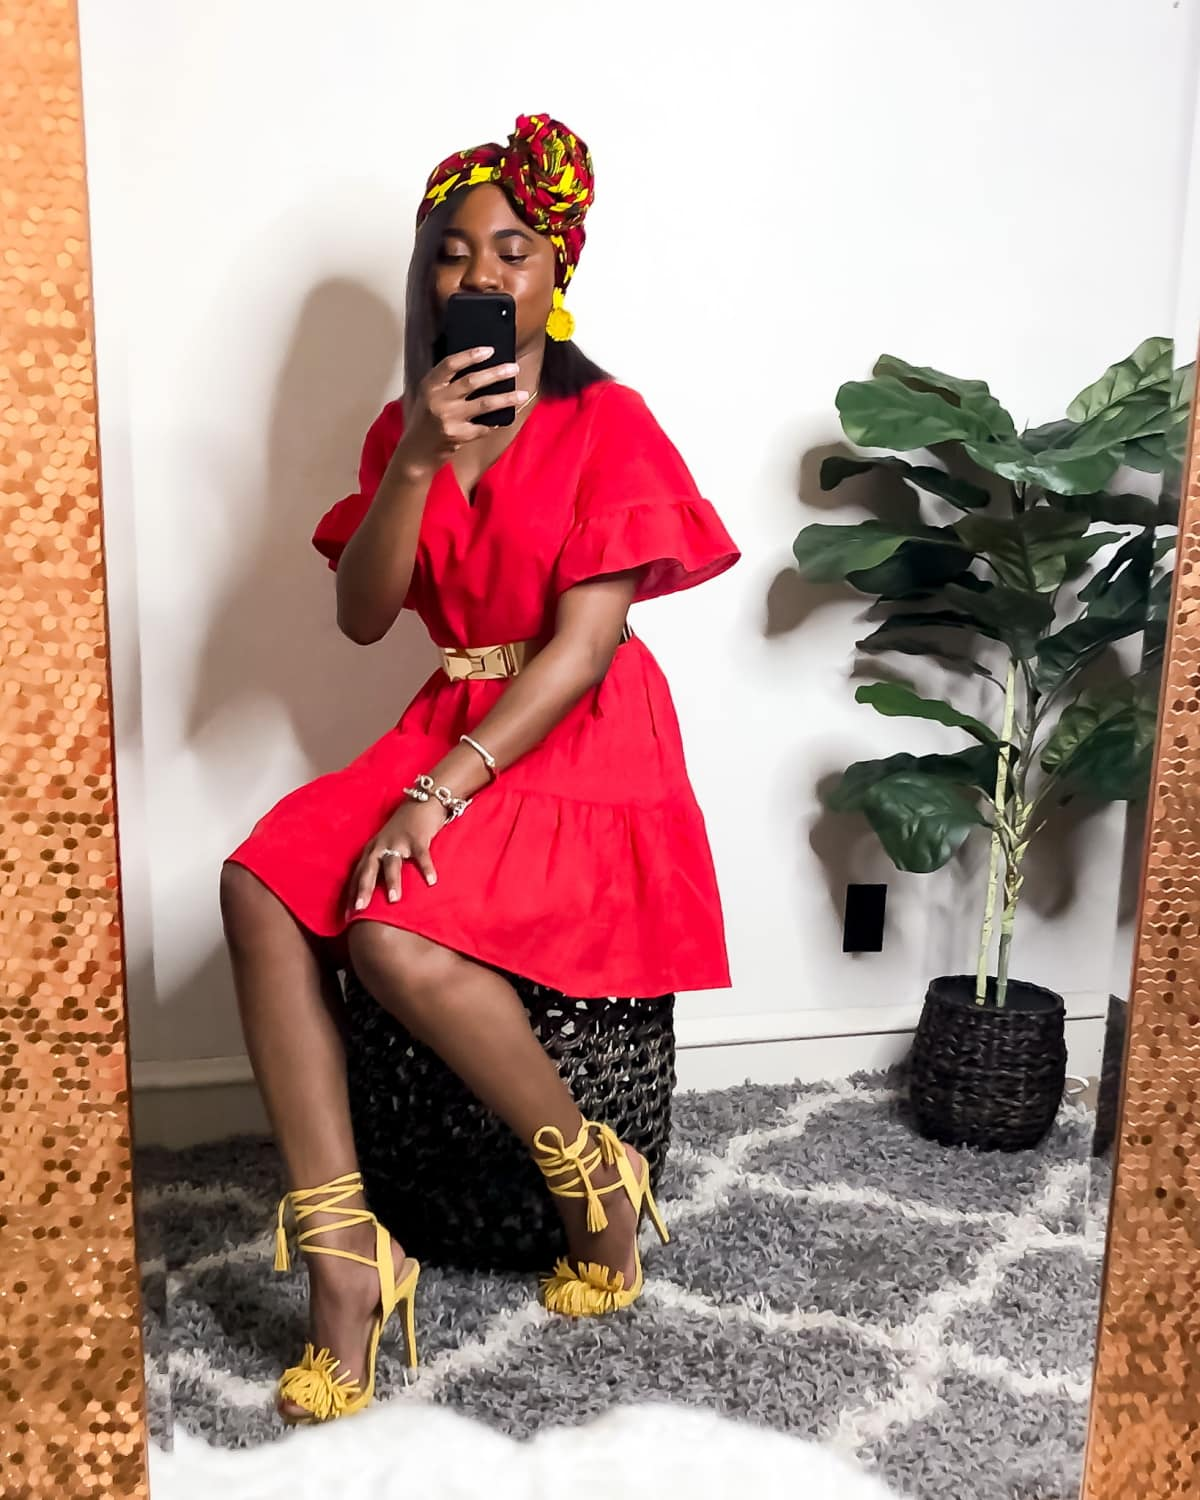 Whether you're looking for a stylish outfit for work or play, you'll love this on-trend red dress outfit ideas to take you from work or brunch to date night and more.